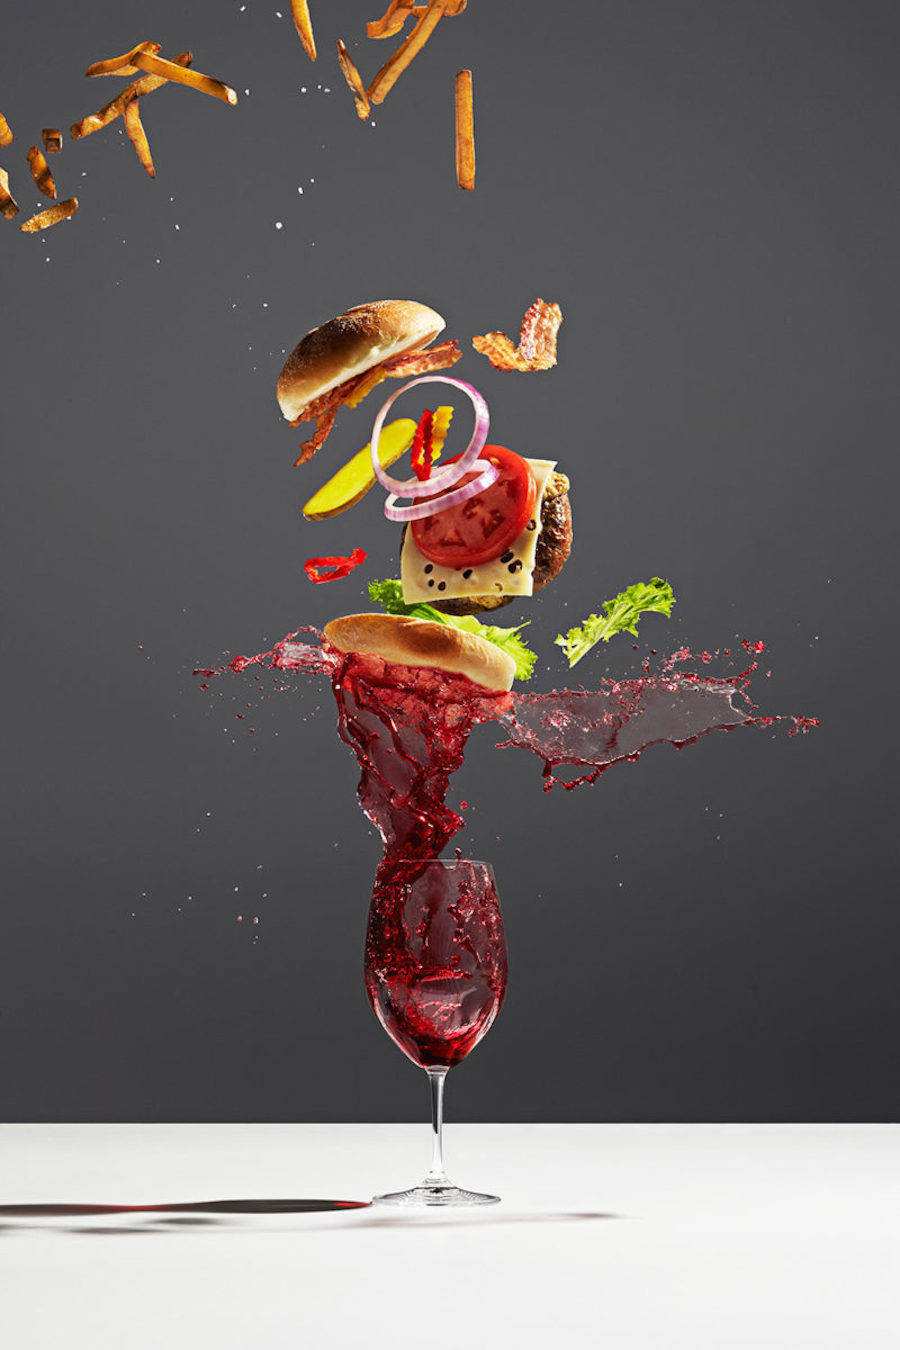 still-life-photography-of-food-in-motion-2-900x1350